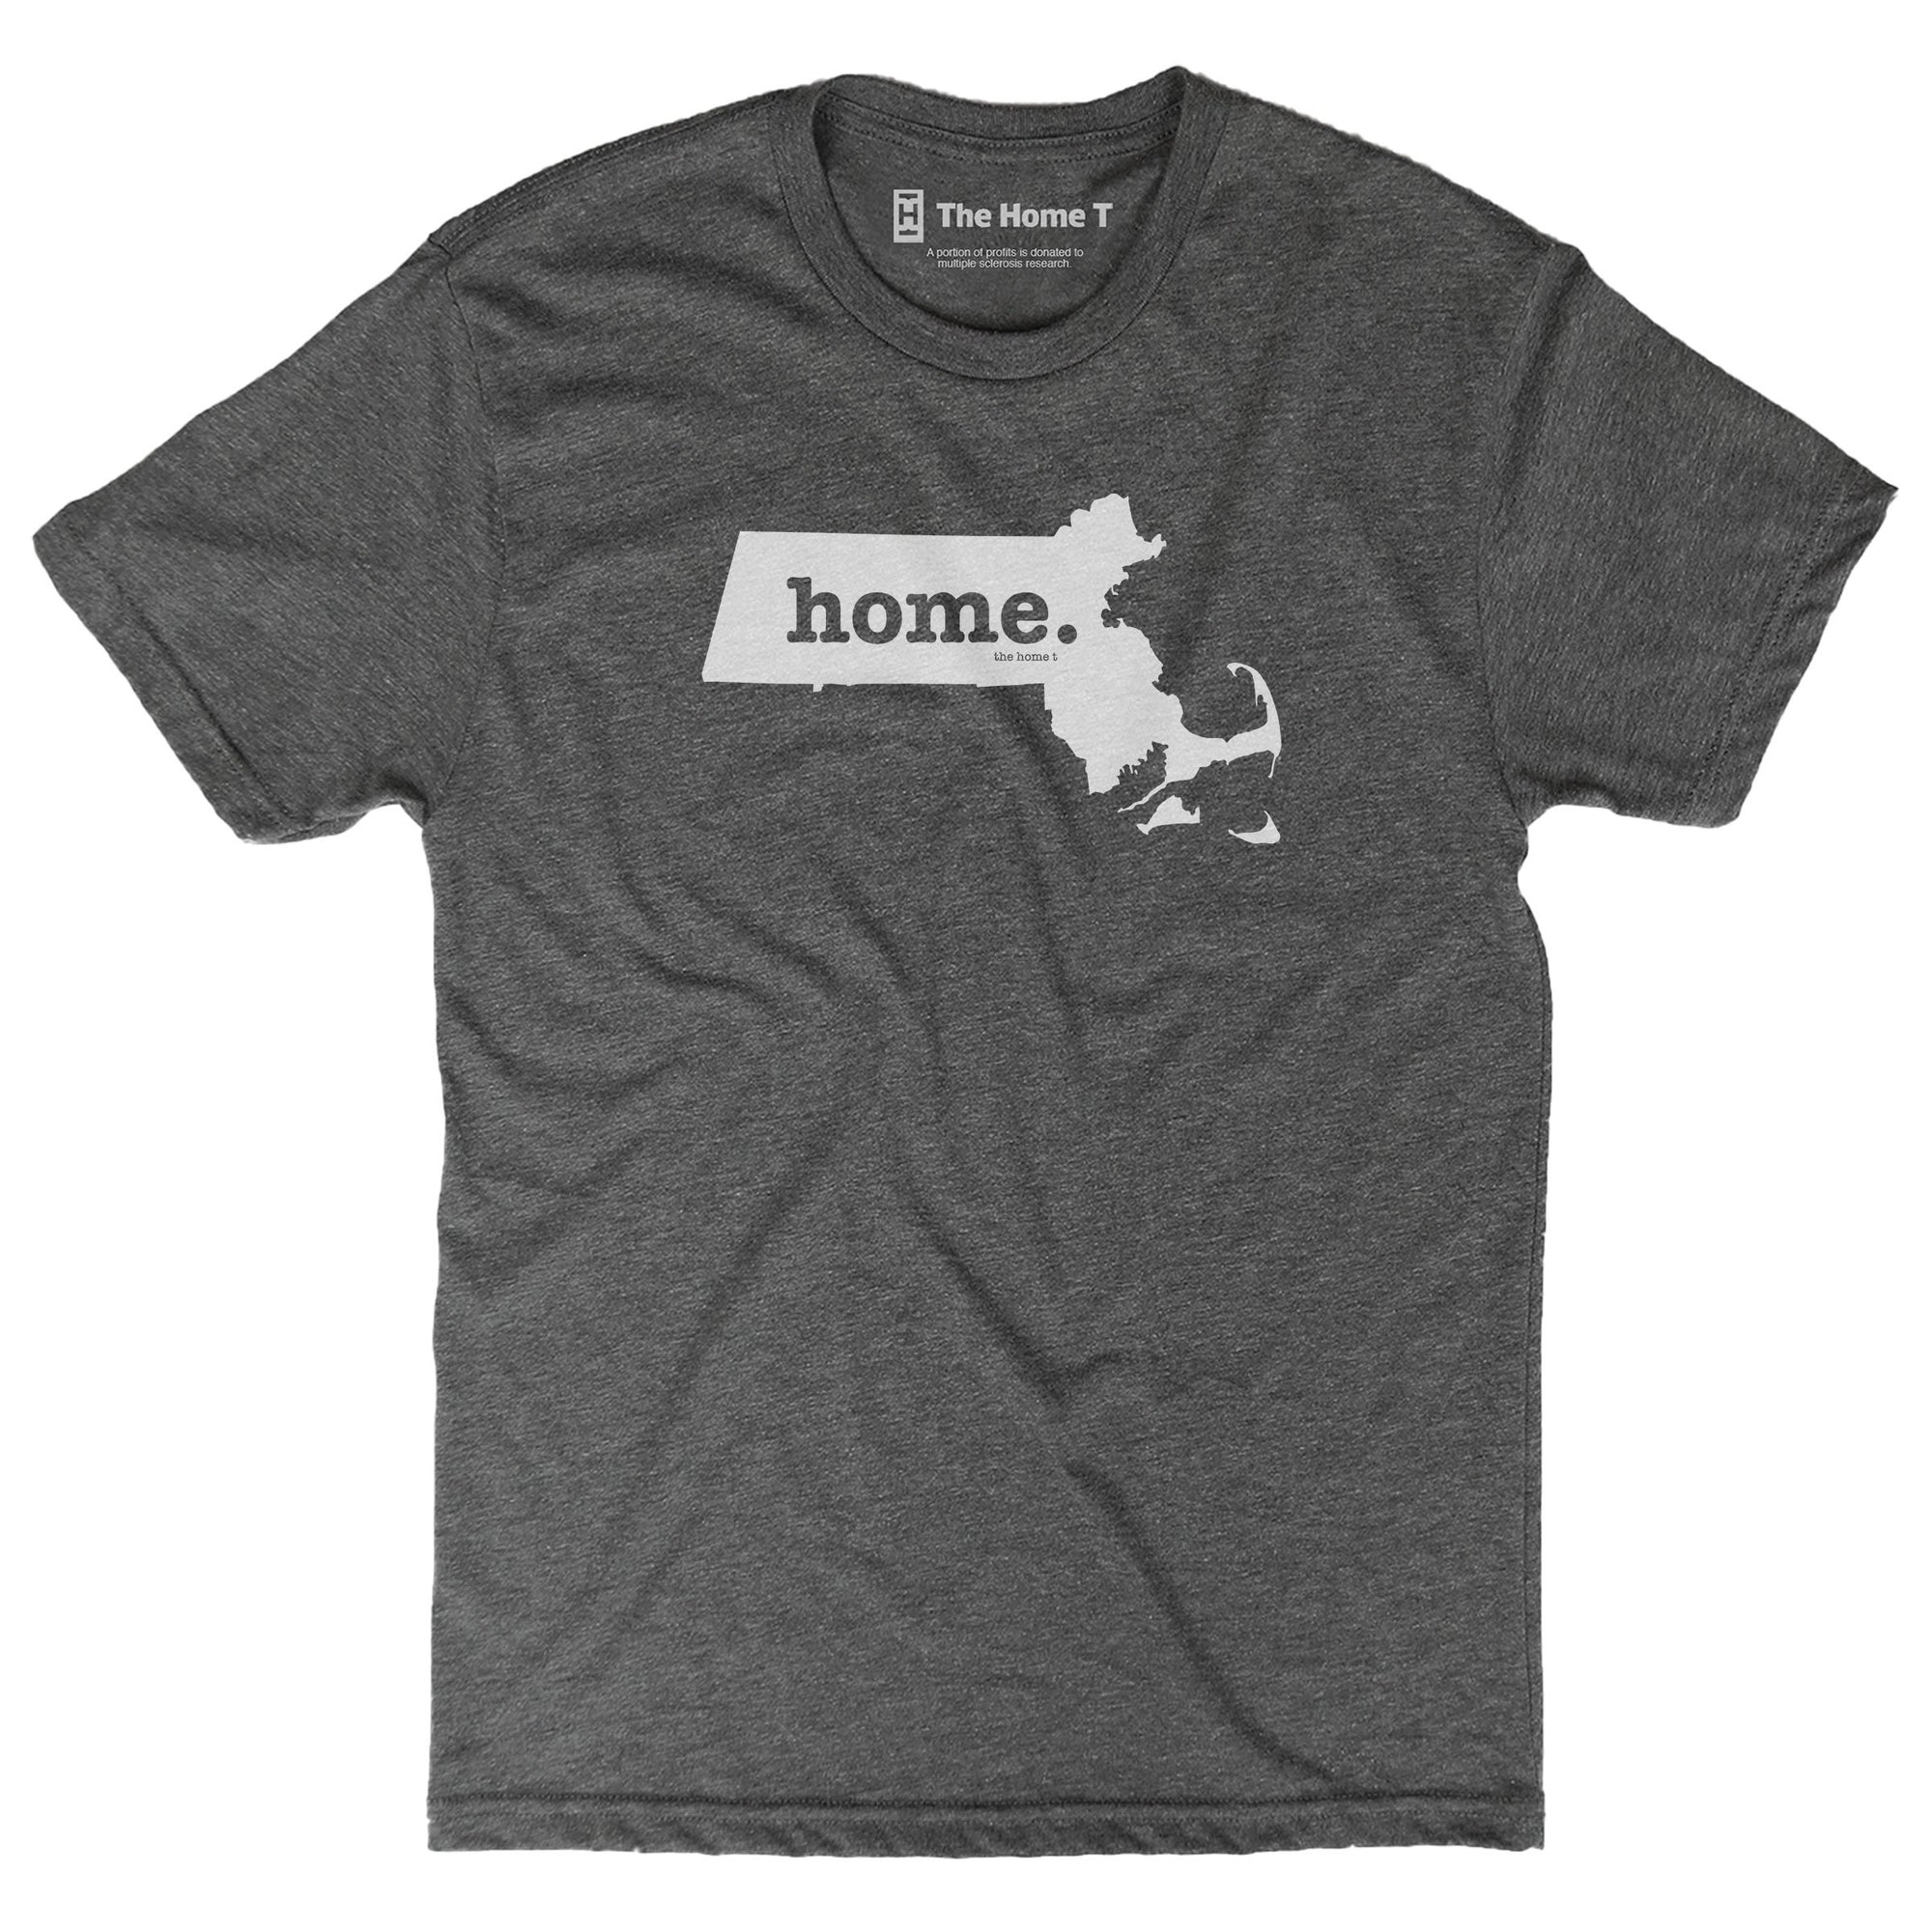 Massachusetts Home T Original Crew The Home T XXL Grey